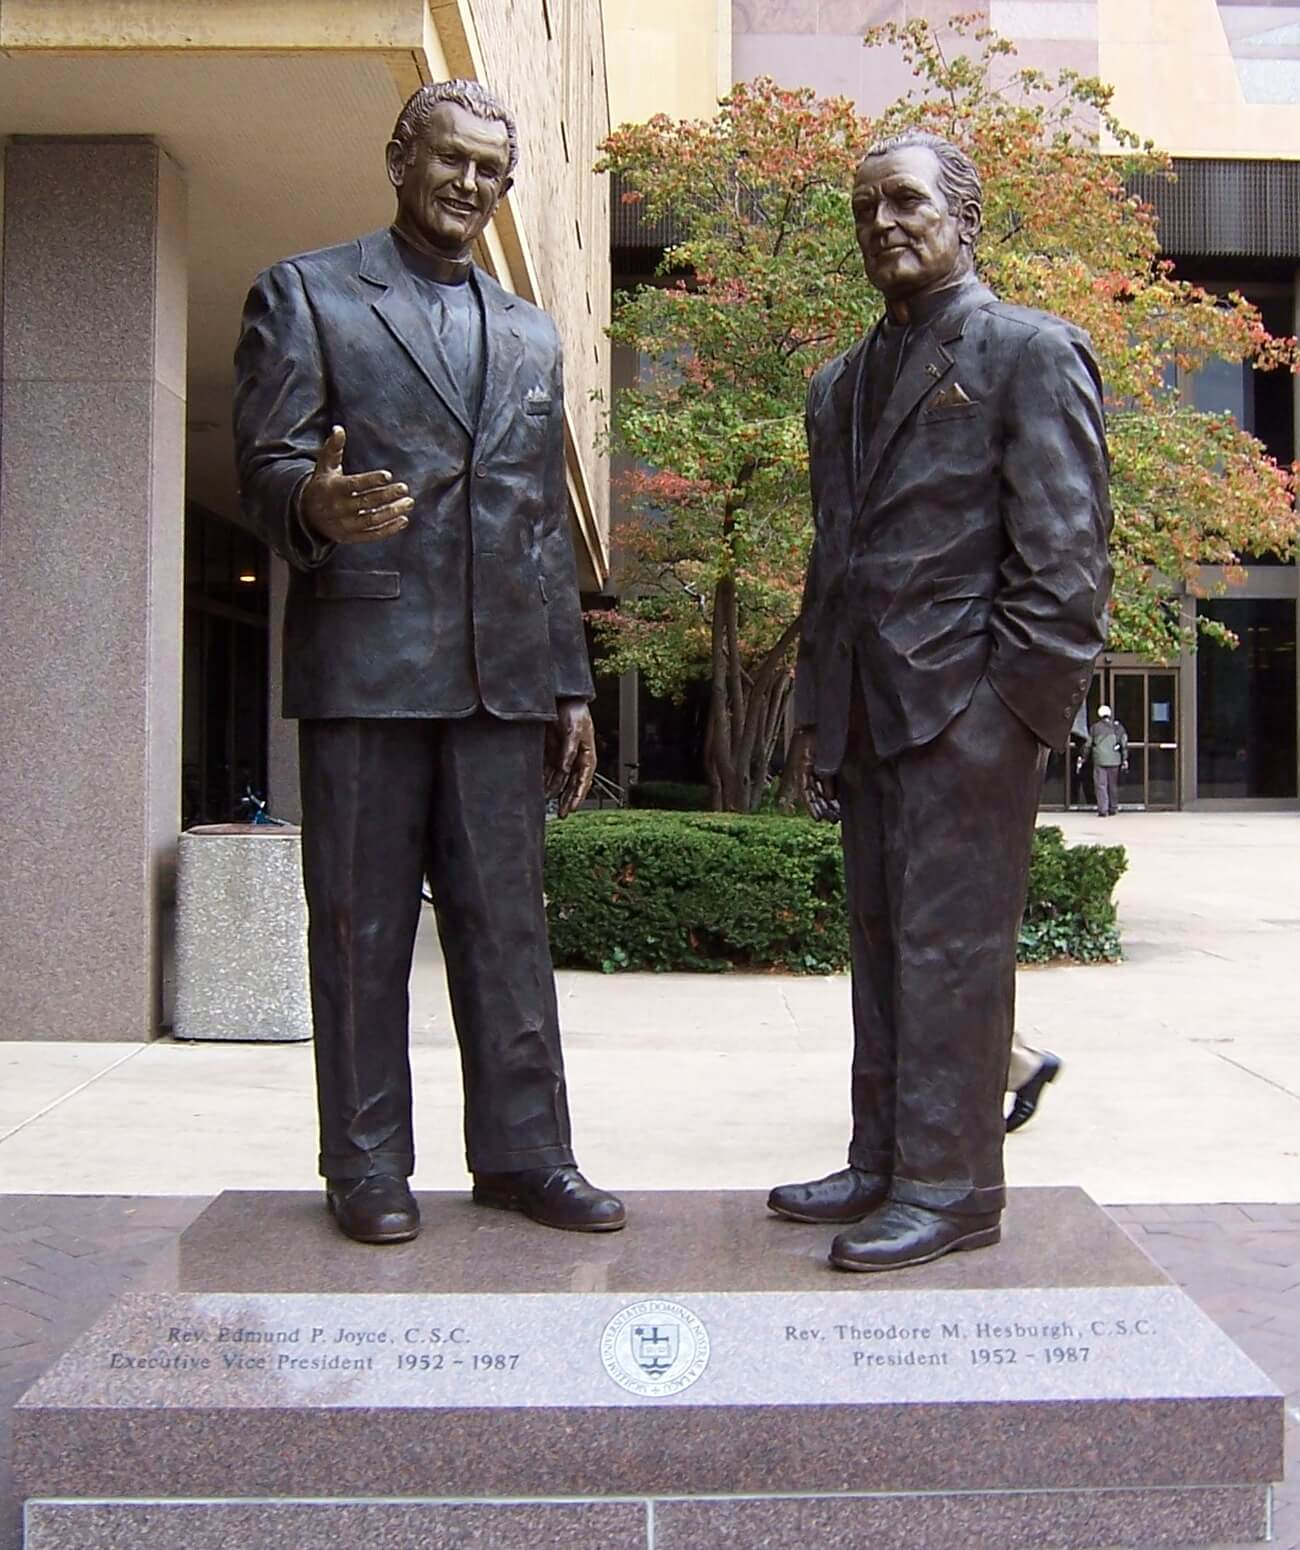 Father Hesburgh and Father Joyce